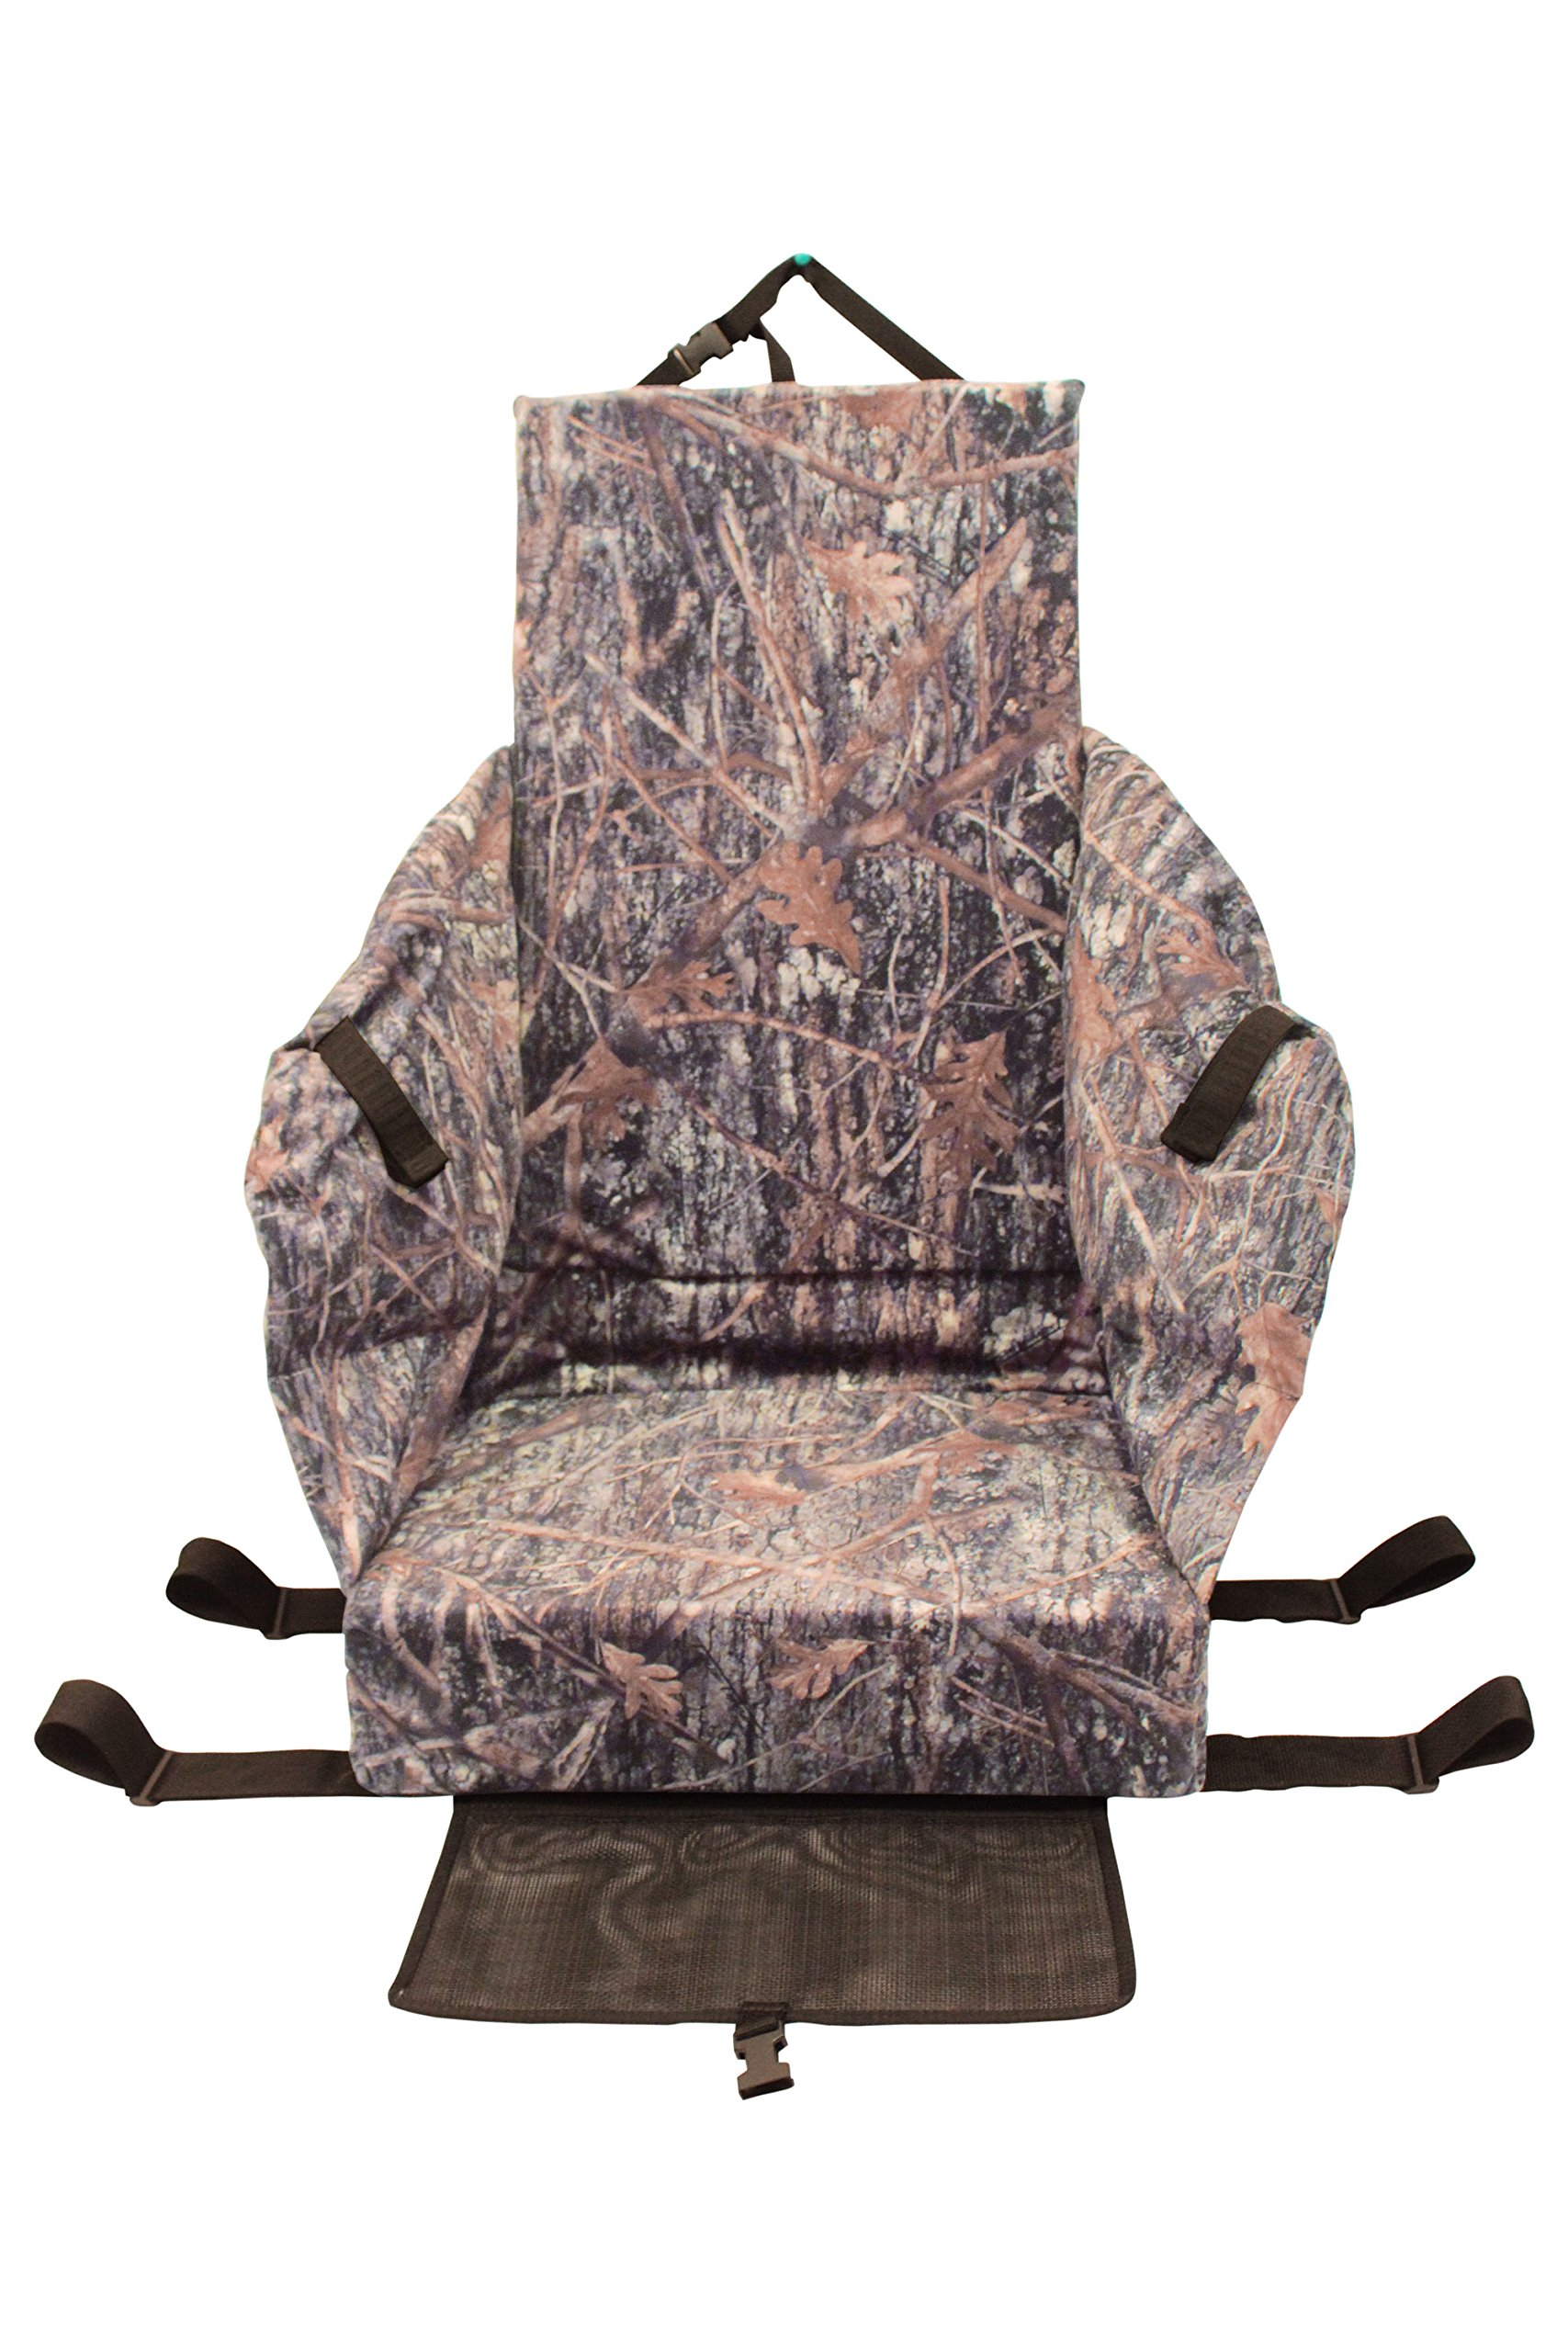 Supreme Slumper - Replacement Tree Stand seat Cushion- Universal Fitting Has Mesh Gear Holding Pocket by Slumper Seats